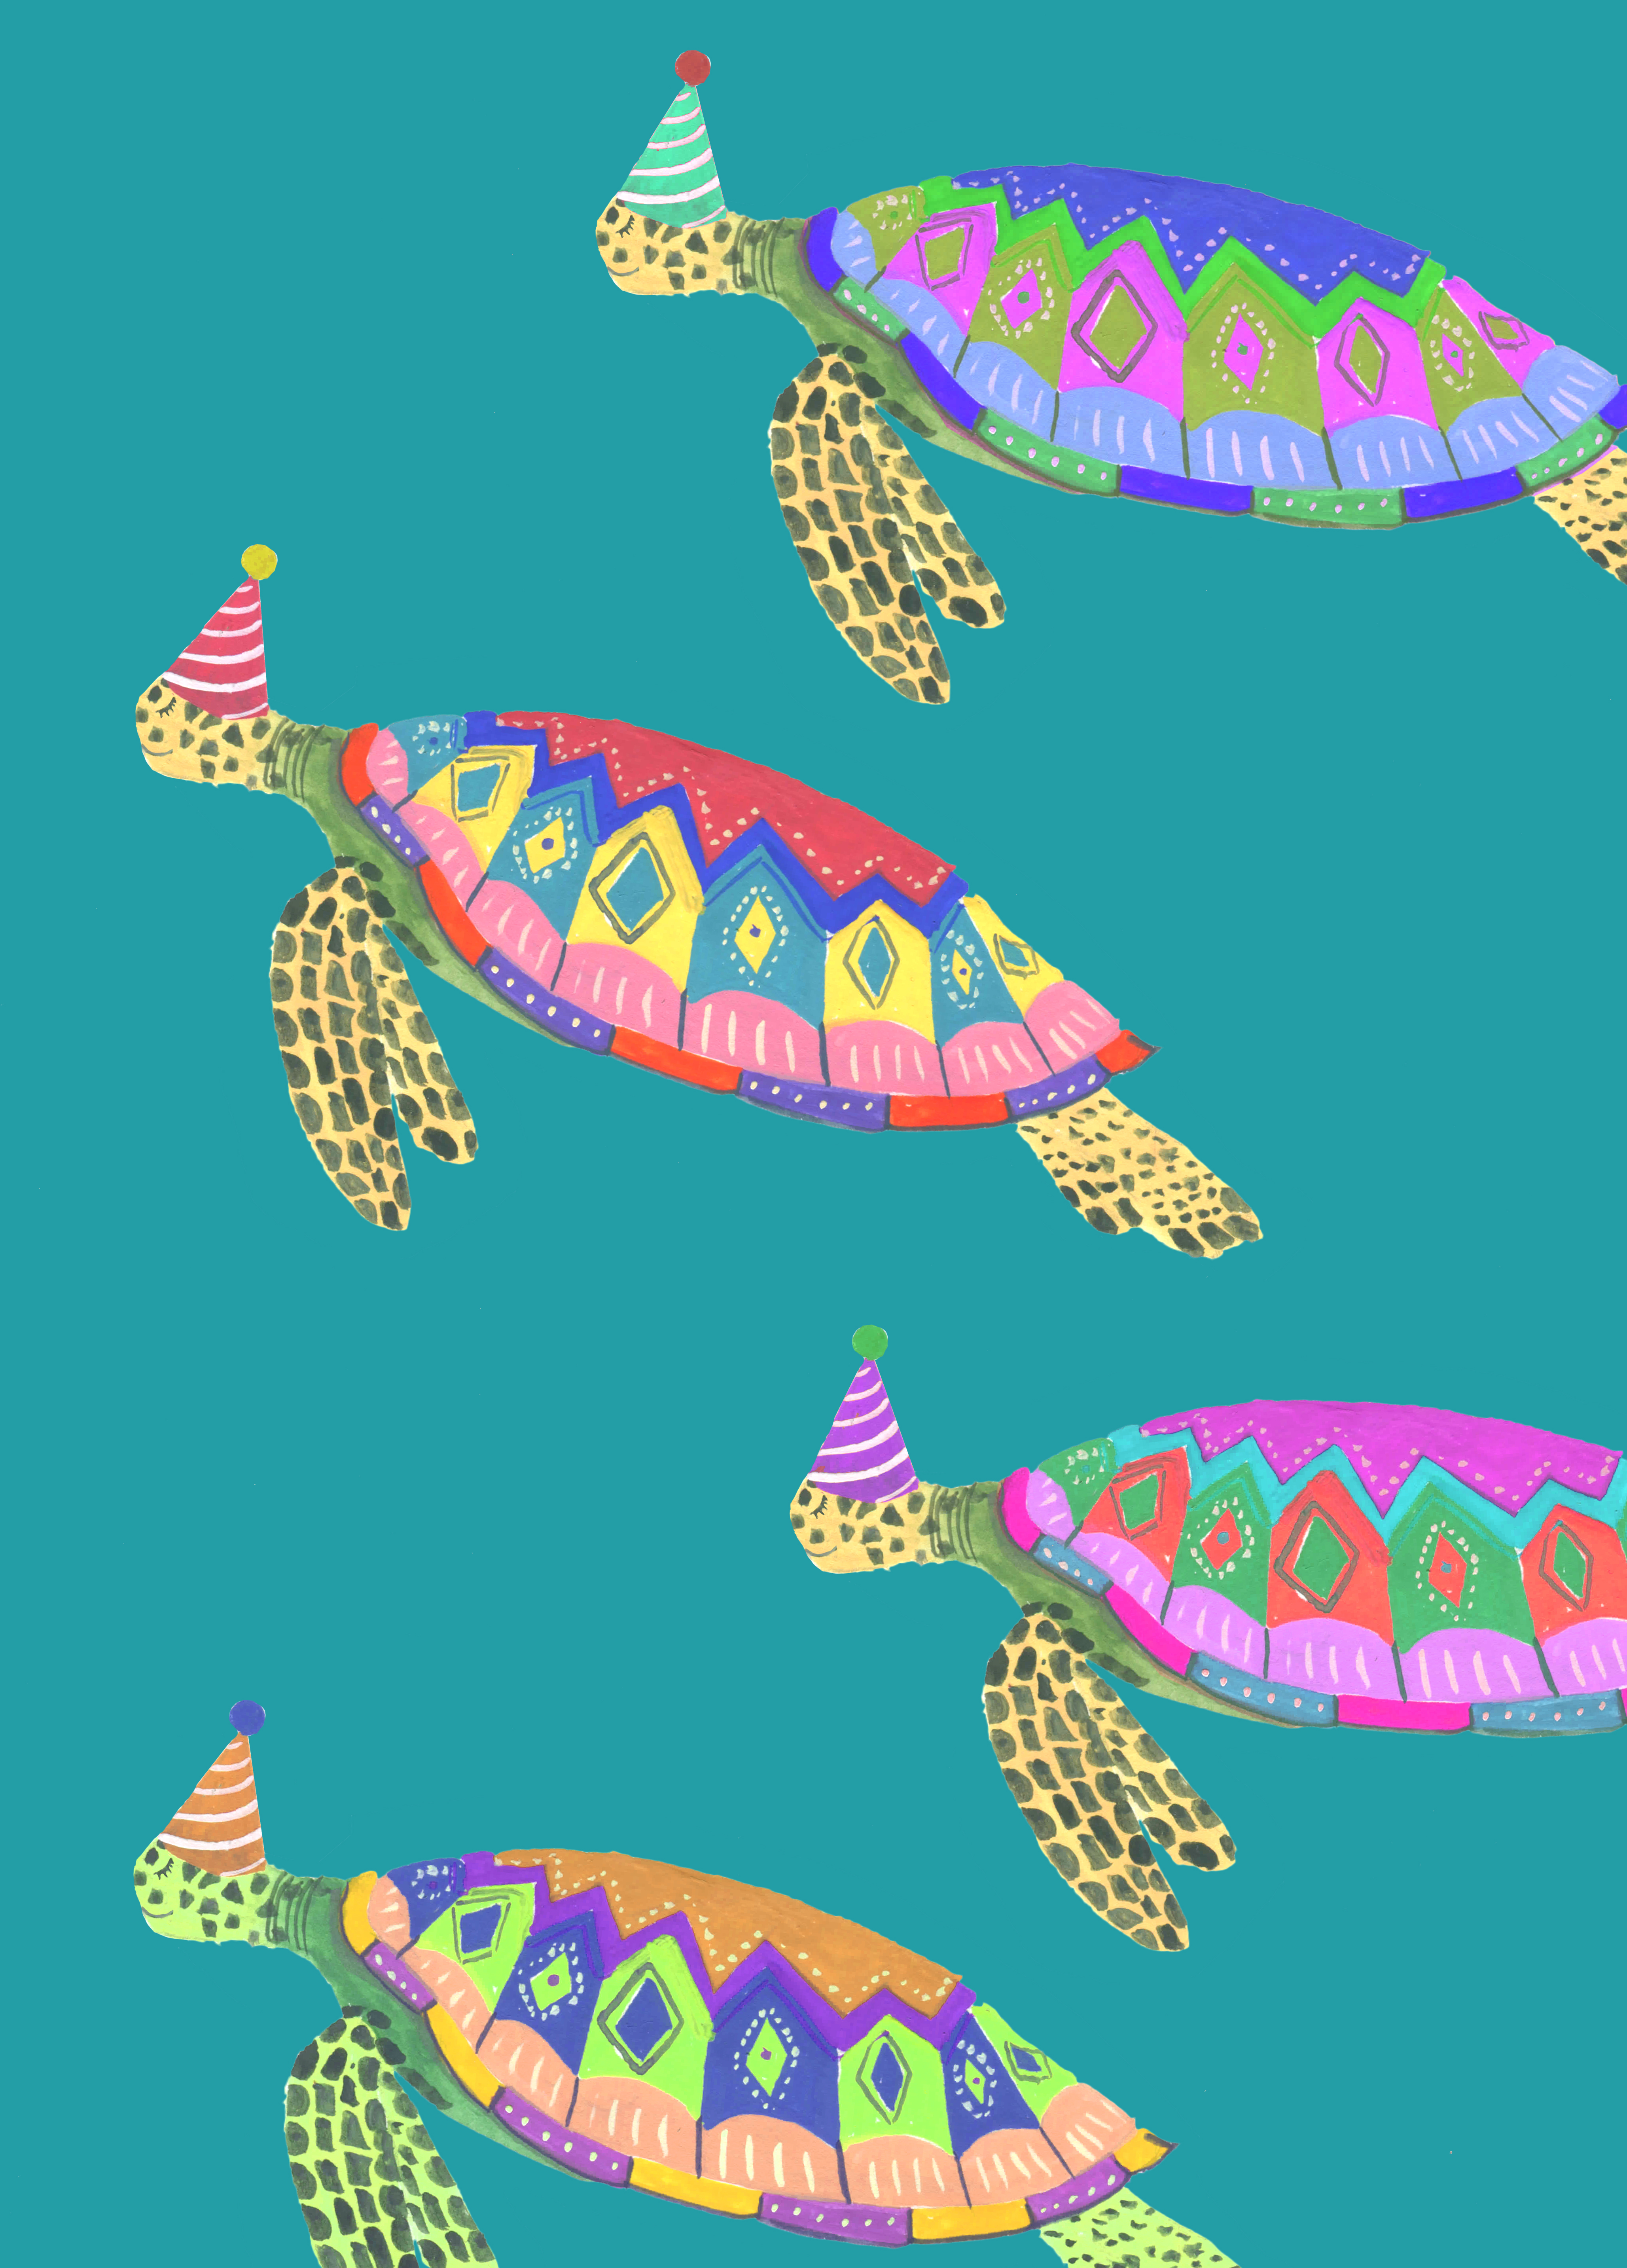 Above: An underwater world of colourful turtles on a design from Hutch Cassidy.